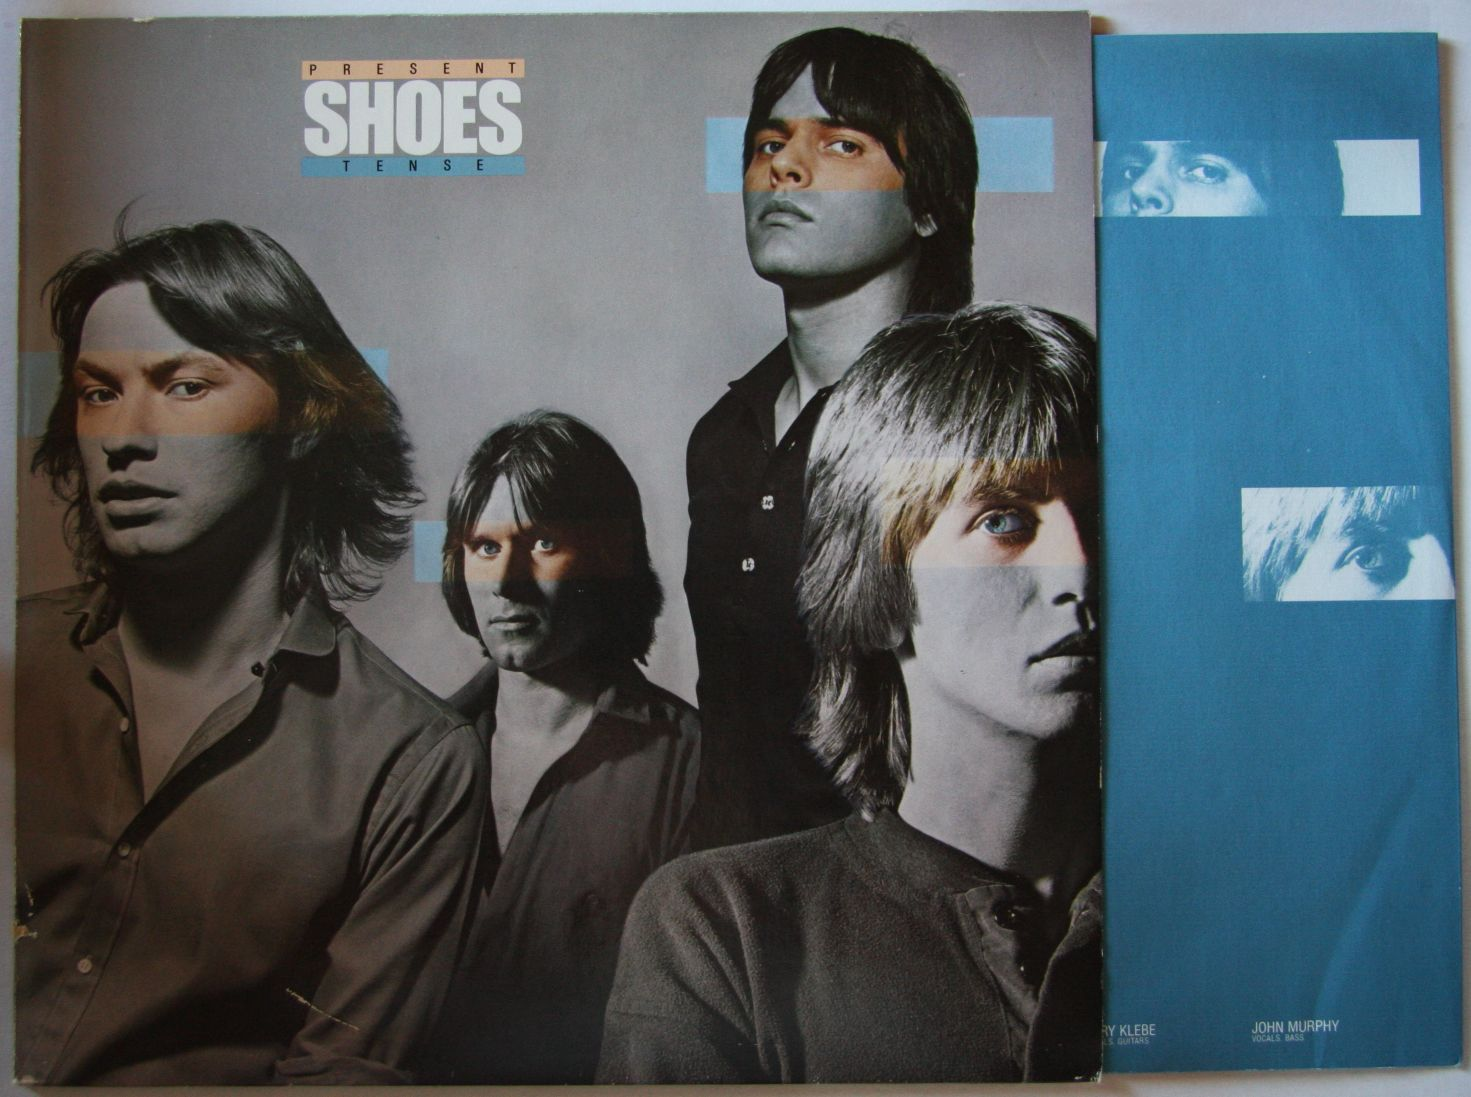 Shoes - Present Tense Single